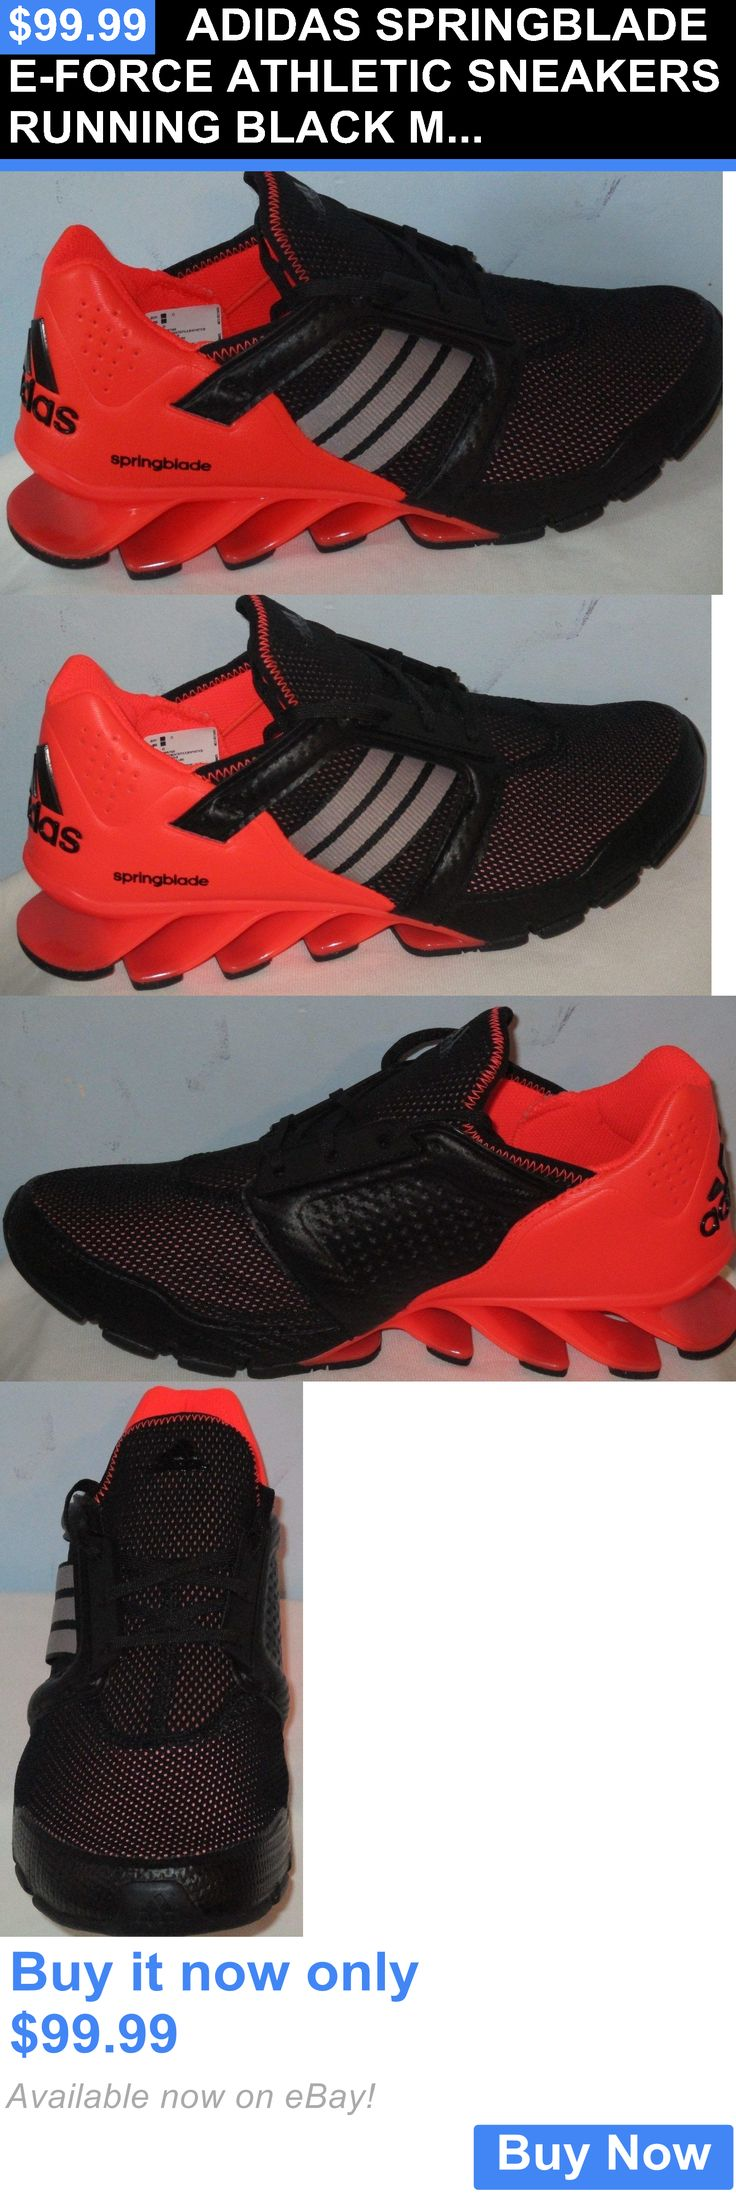 Men Shoes: Adidas Springblade E-Force Athletic Sneakers Running Black Men Shoes Size 9 BUY IT NOW ONLY: $99.99